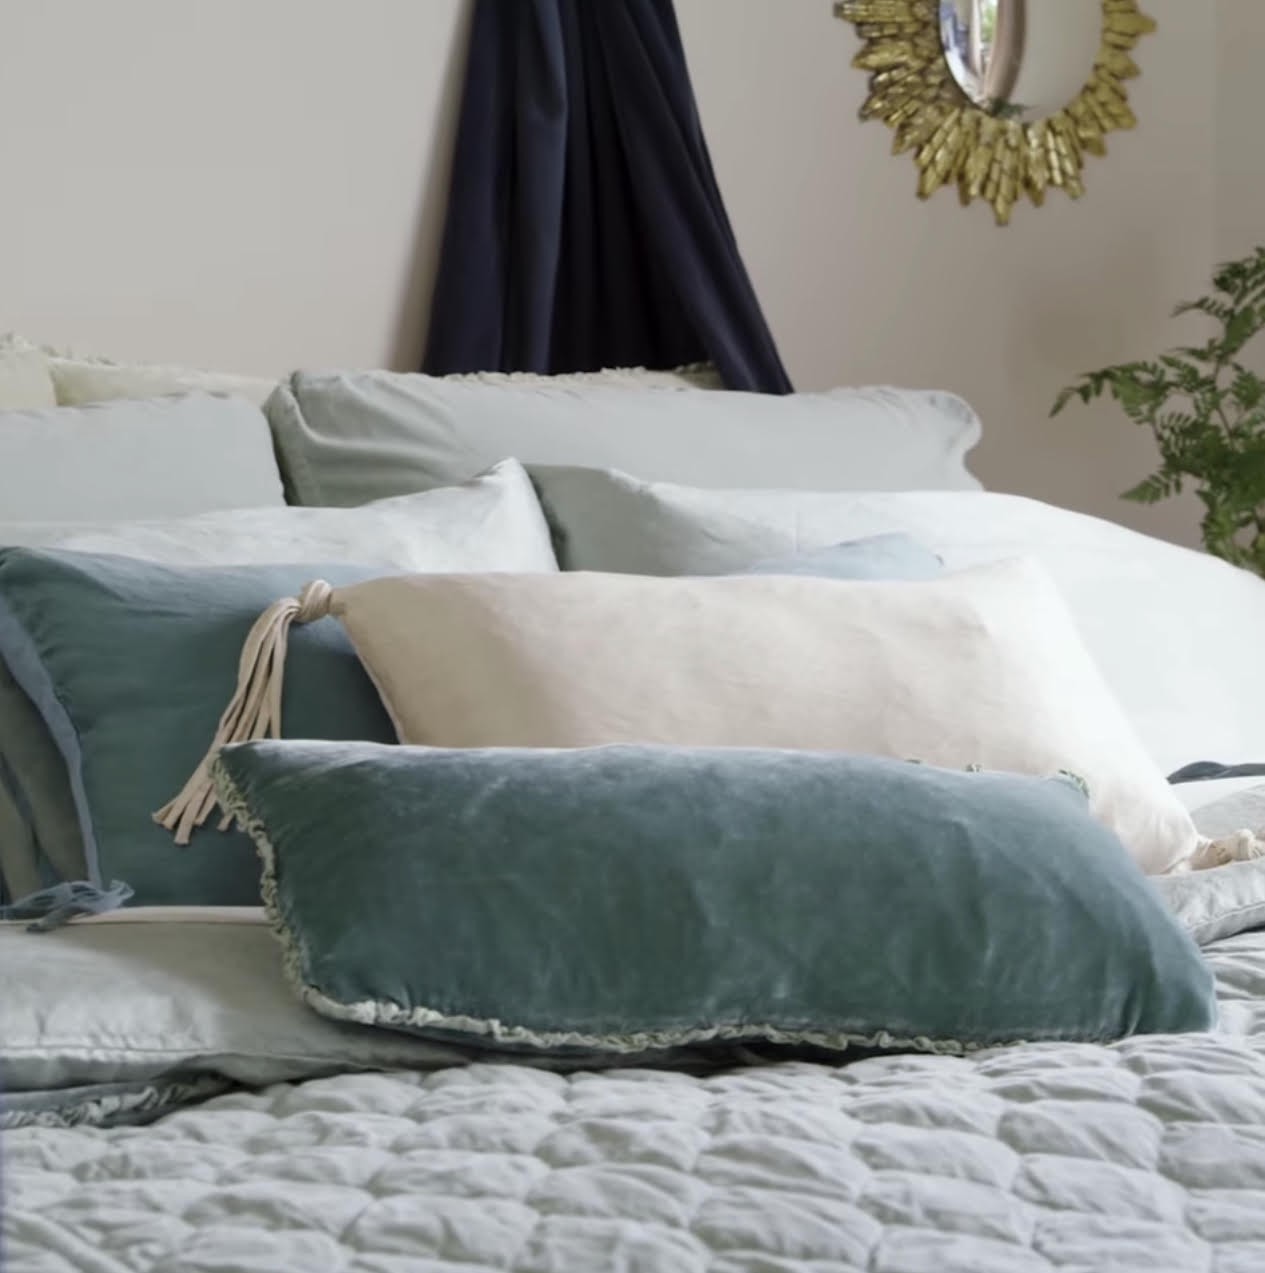 Gorgeous Teal Linens and Throw Pillows by Bella Notte available at La Farre Markt in Trussville, Alabama